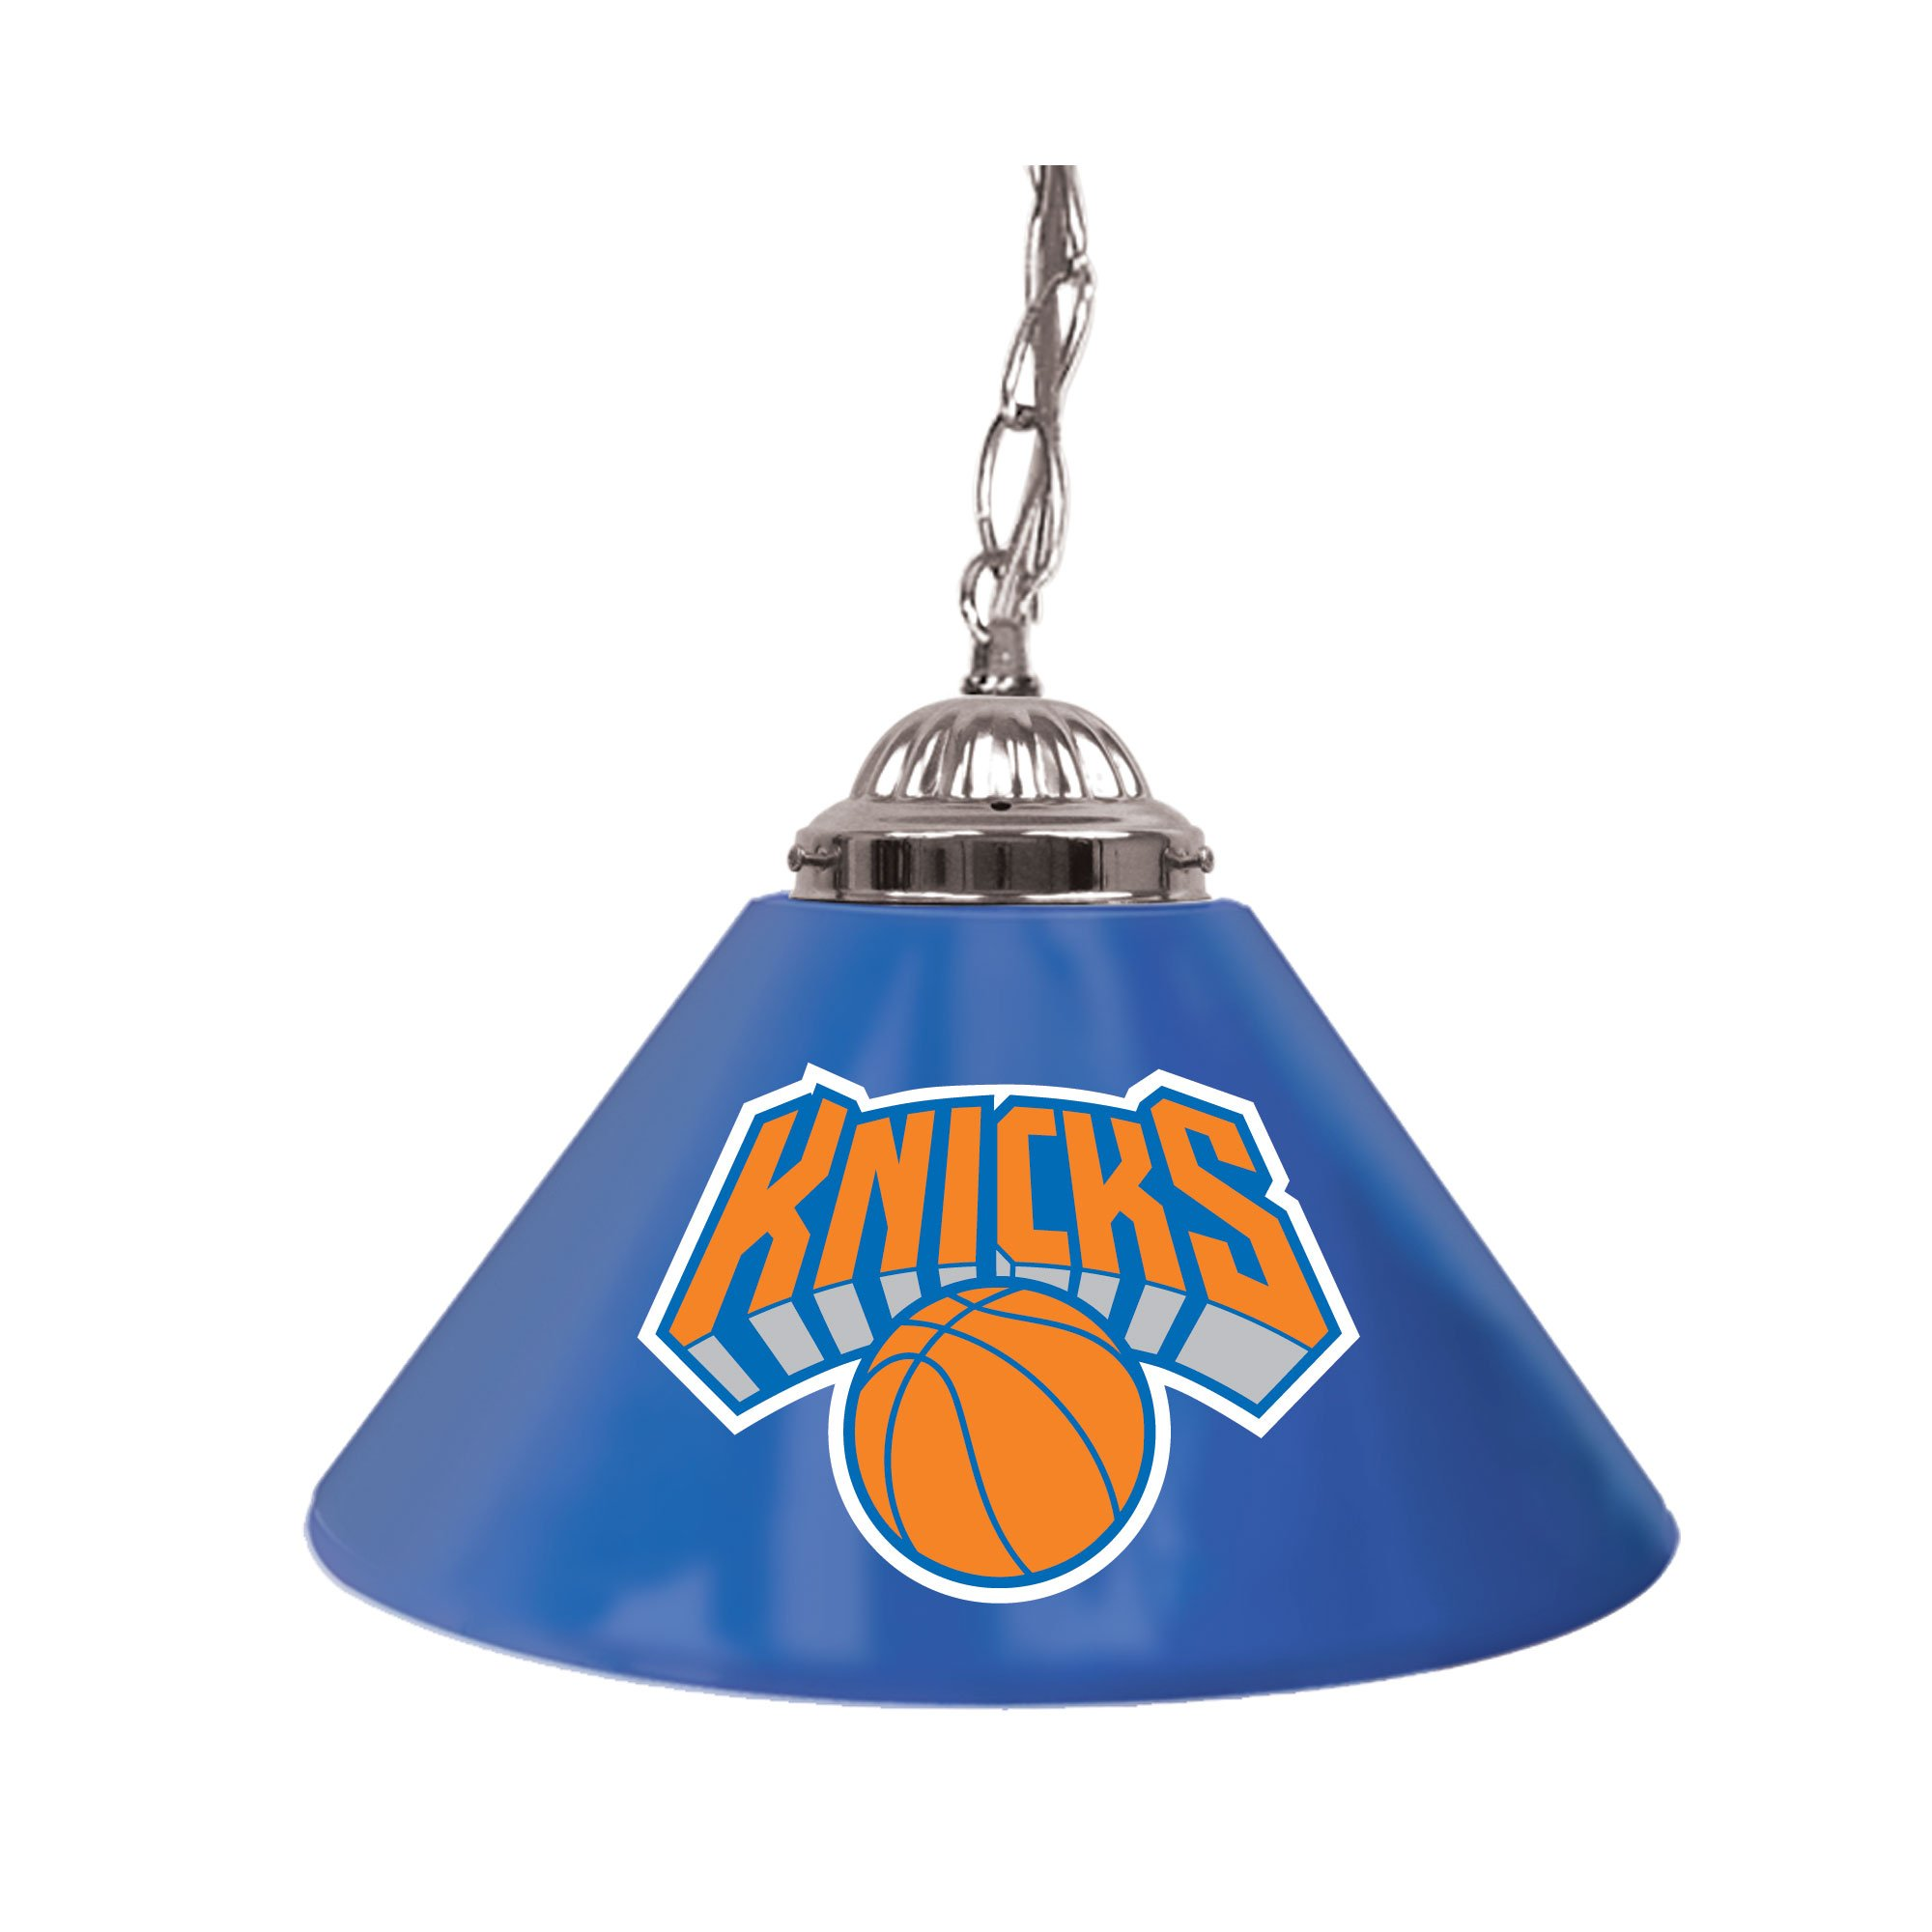 NBA New York Knicks Single Shade Gameroom Lamp, 14''